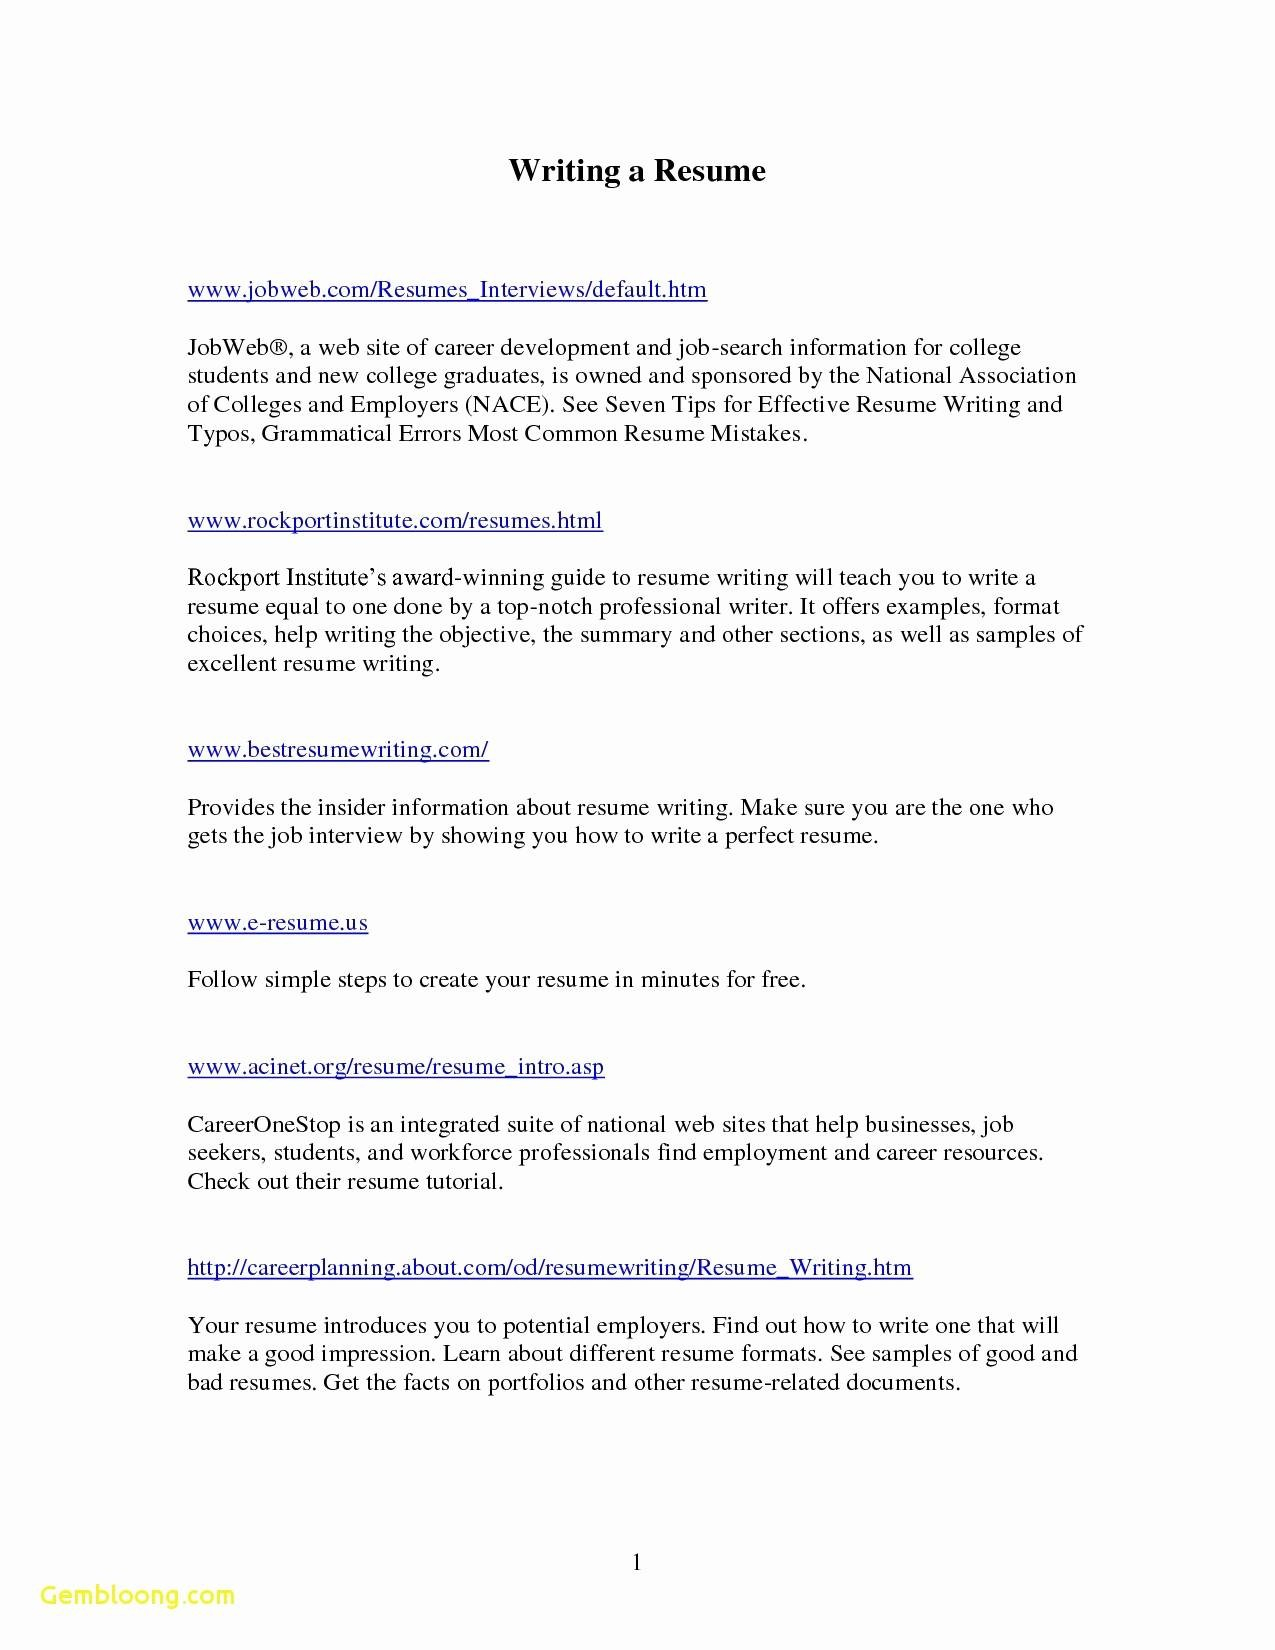 Social Security Award Letter Template - Cover Letter Supervisor Position No Experience